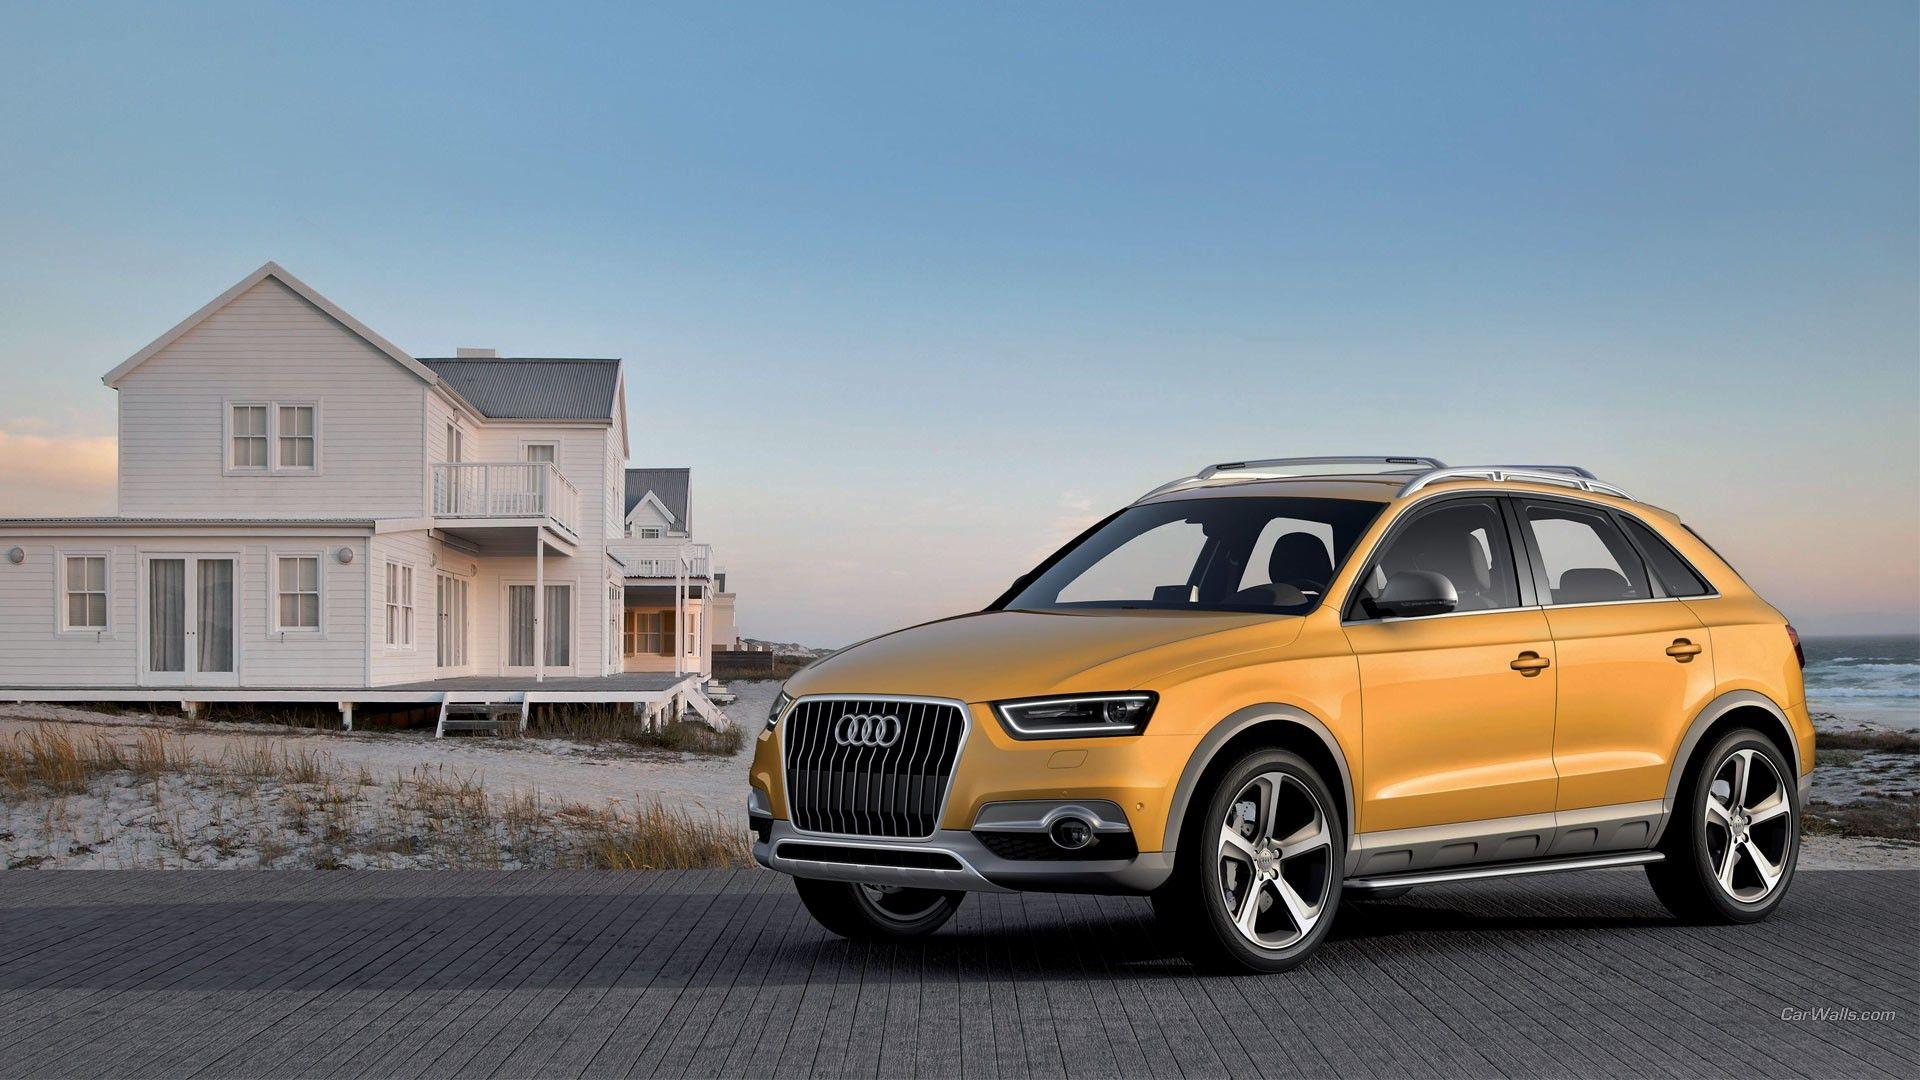 Audi Q3 Wallpapers HD / Desktop and Mobile Backgrounds